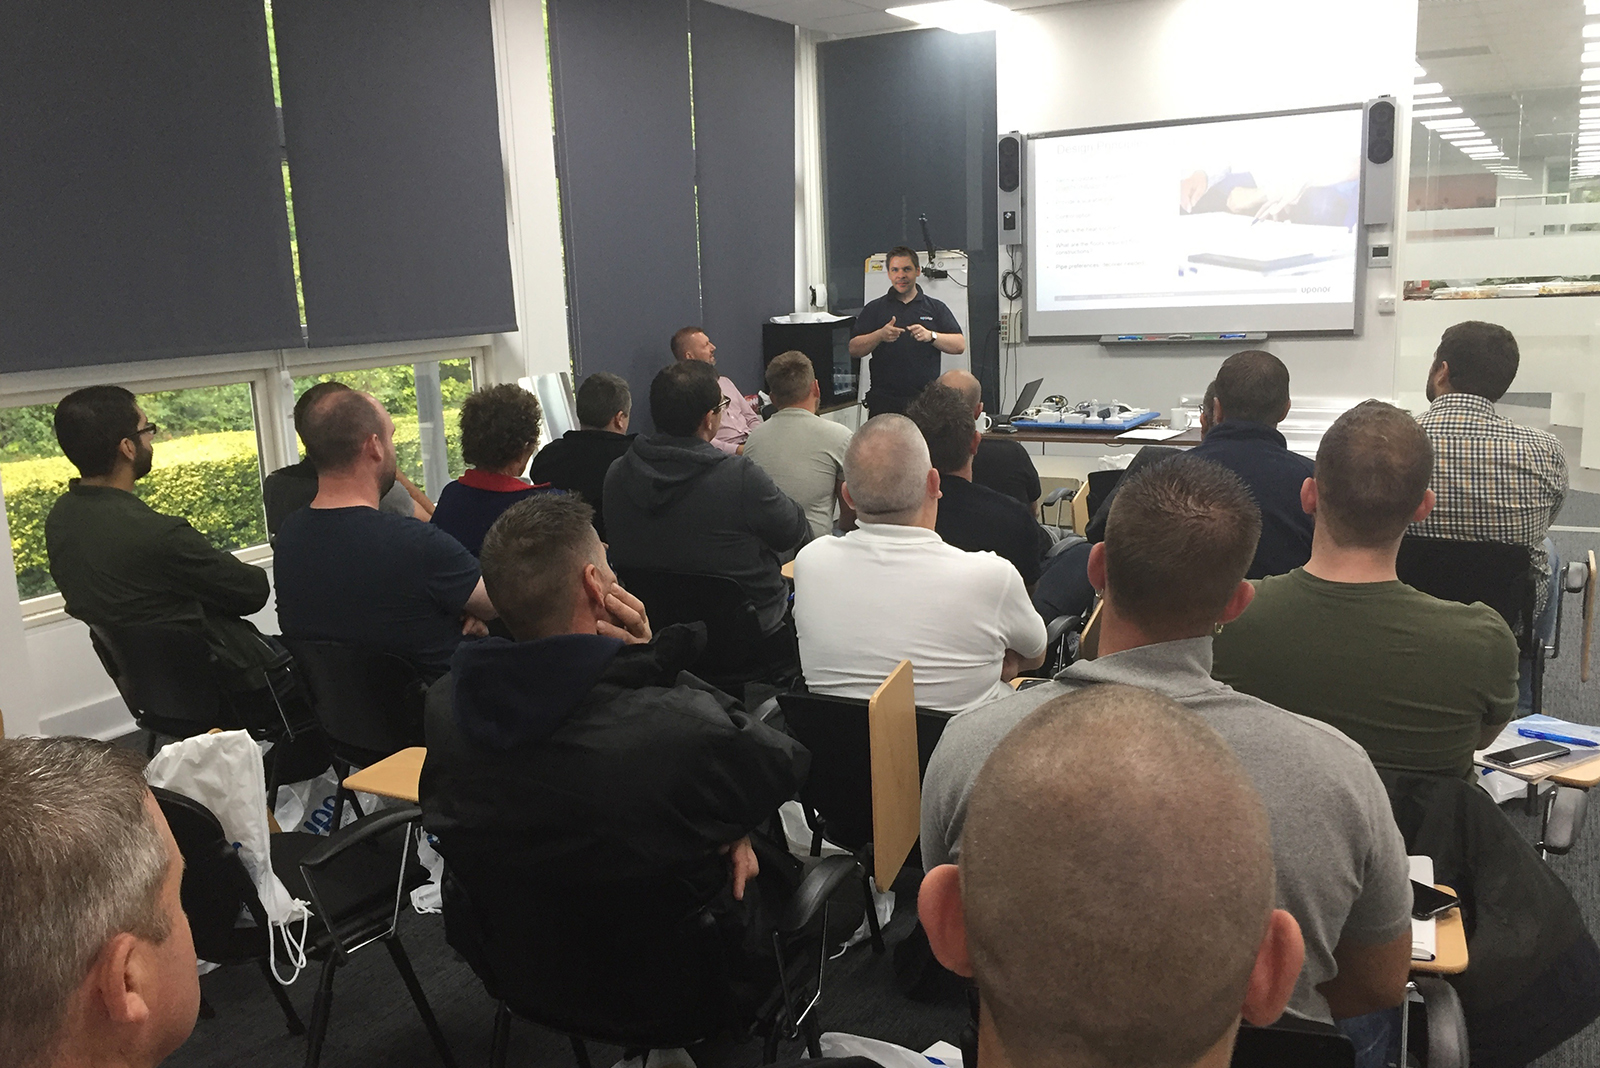 Over 2,000 certificates awarded through Uponor's successful training programme